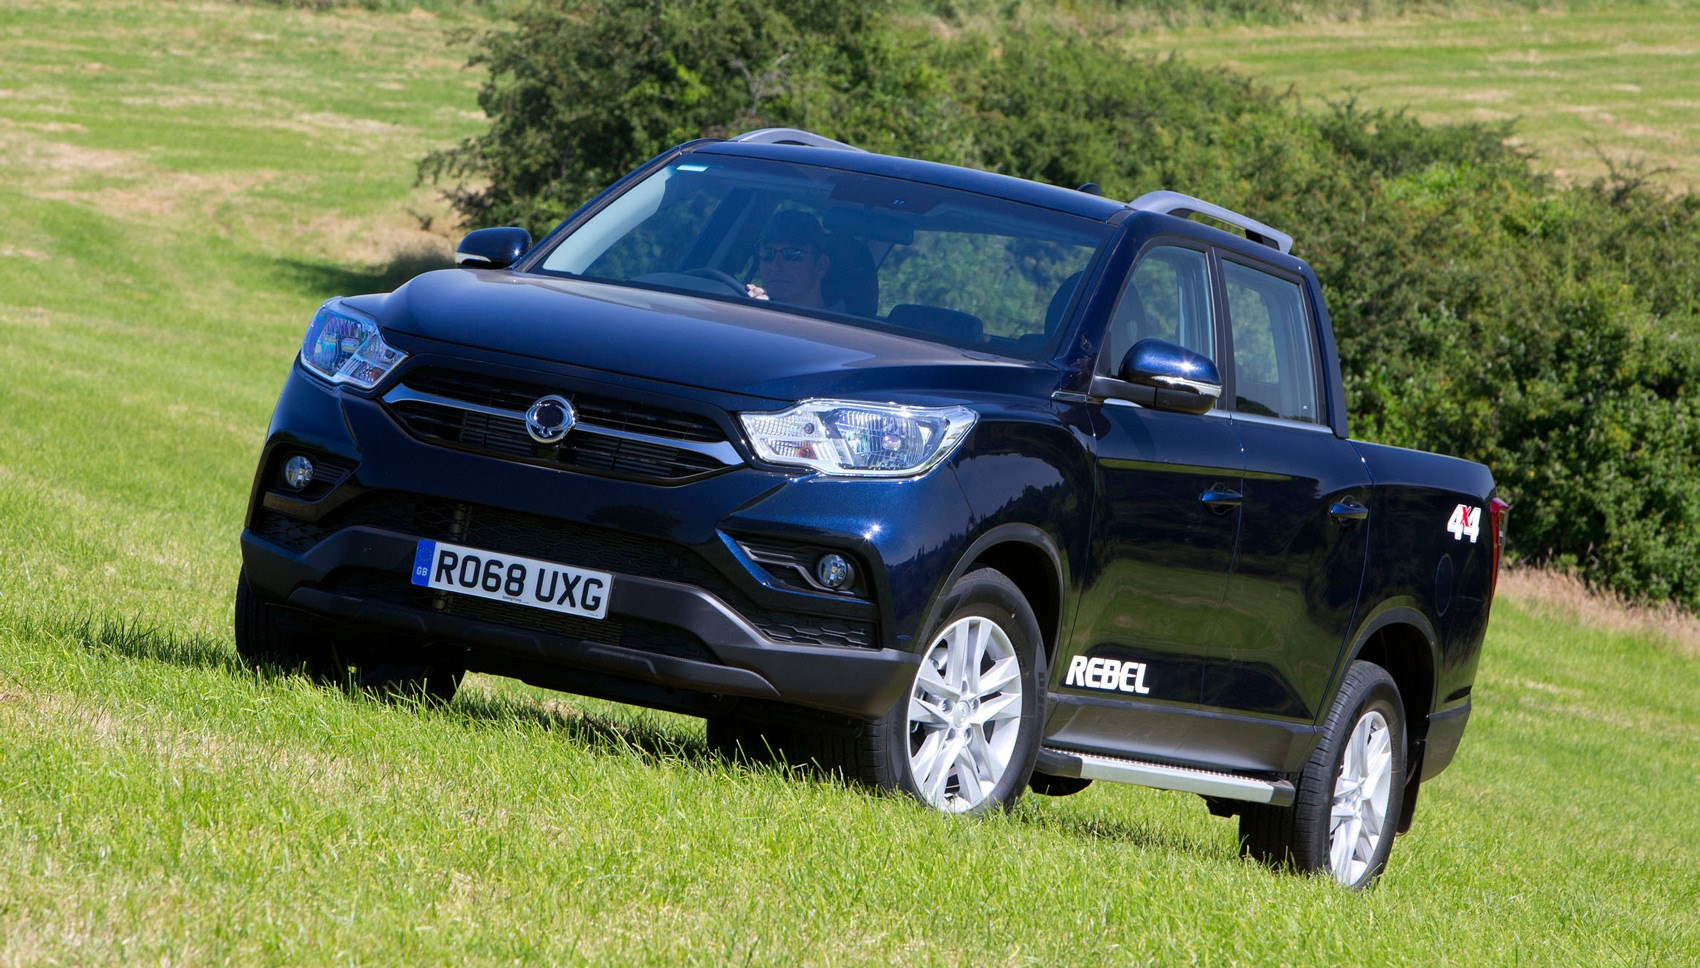 SsangYong Musso pickup (2018) review: bargain bucking bronco